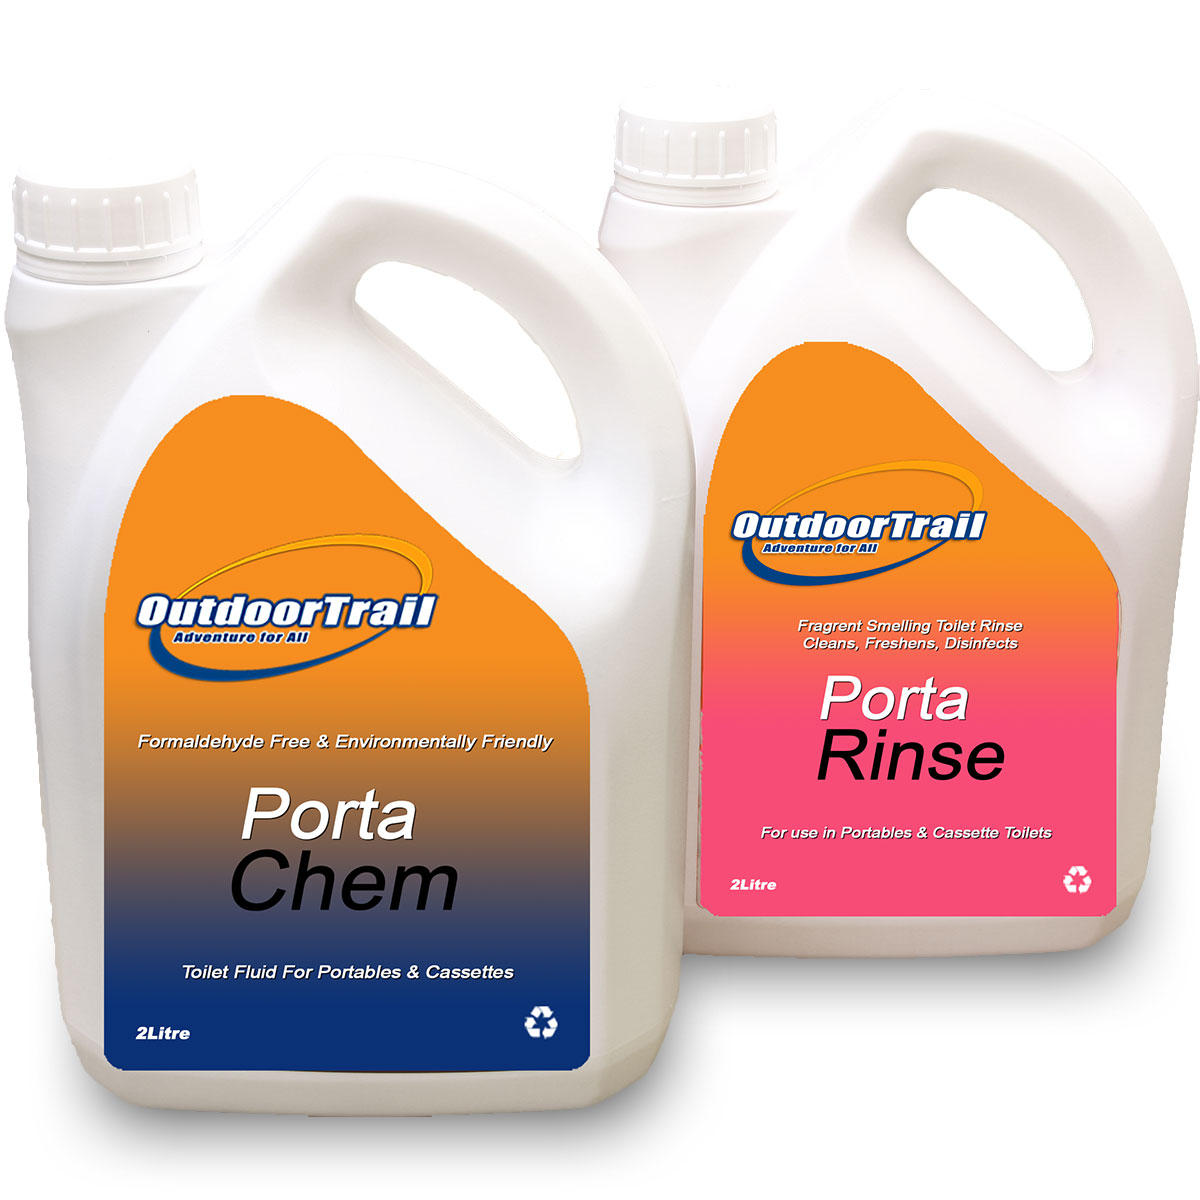 Porta Chem + Porta Rinse 2L Chemical Toilet Fluid (Twinpack) Preview